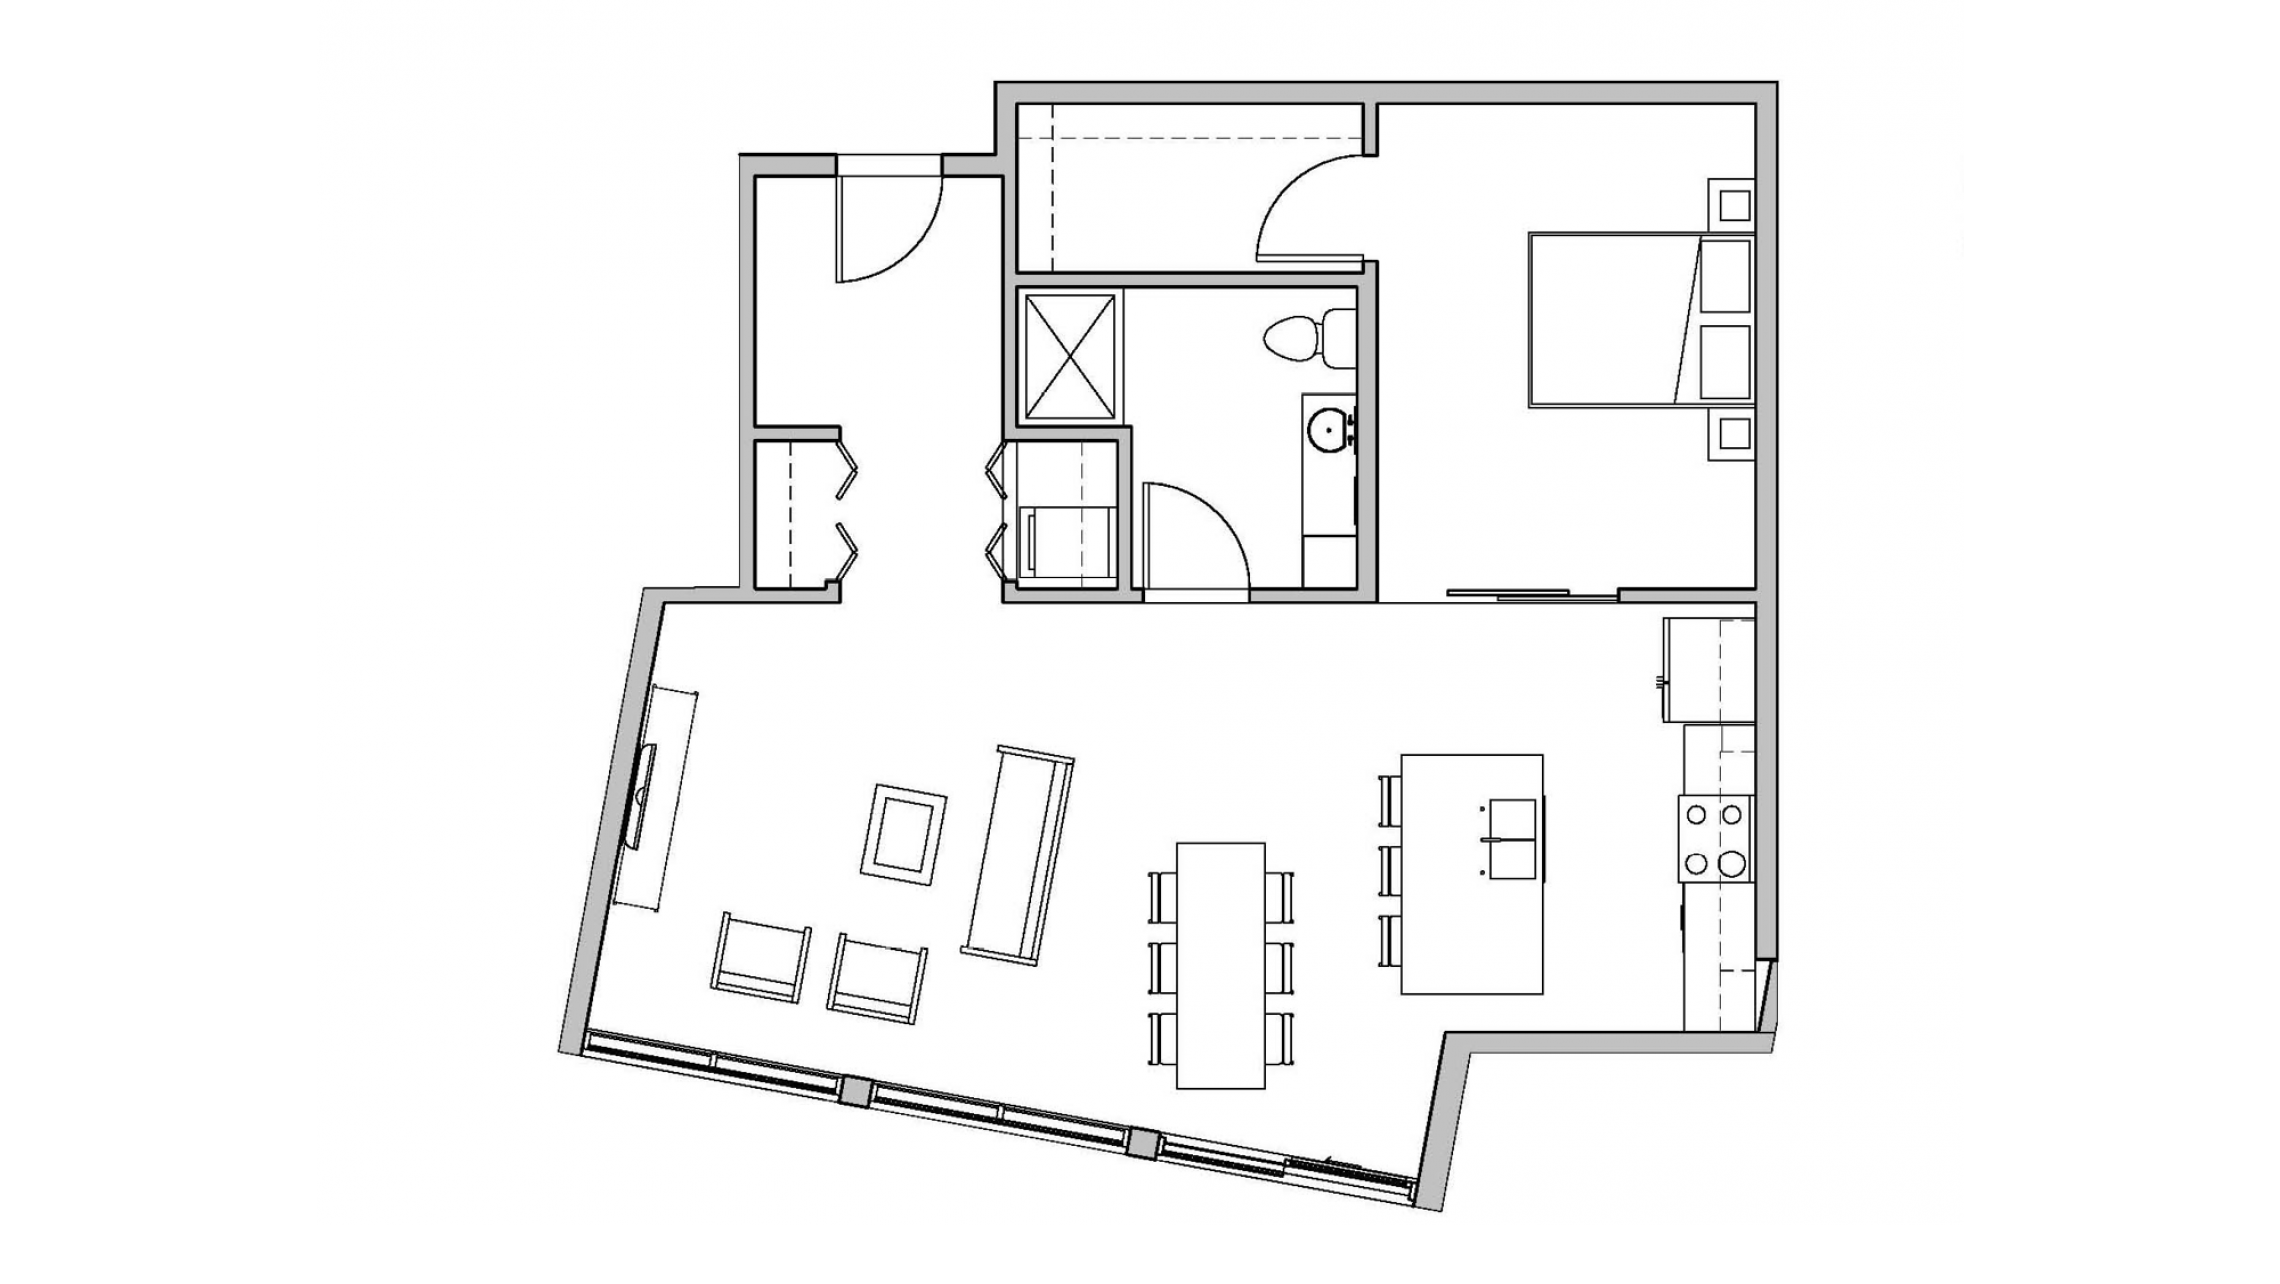 ULI Seven27 219 - One Bedroom, One Bathroom